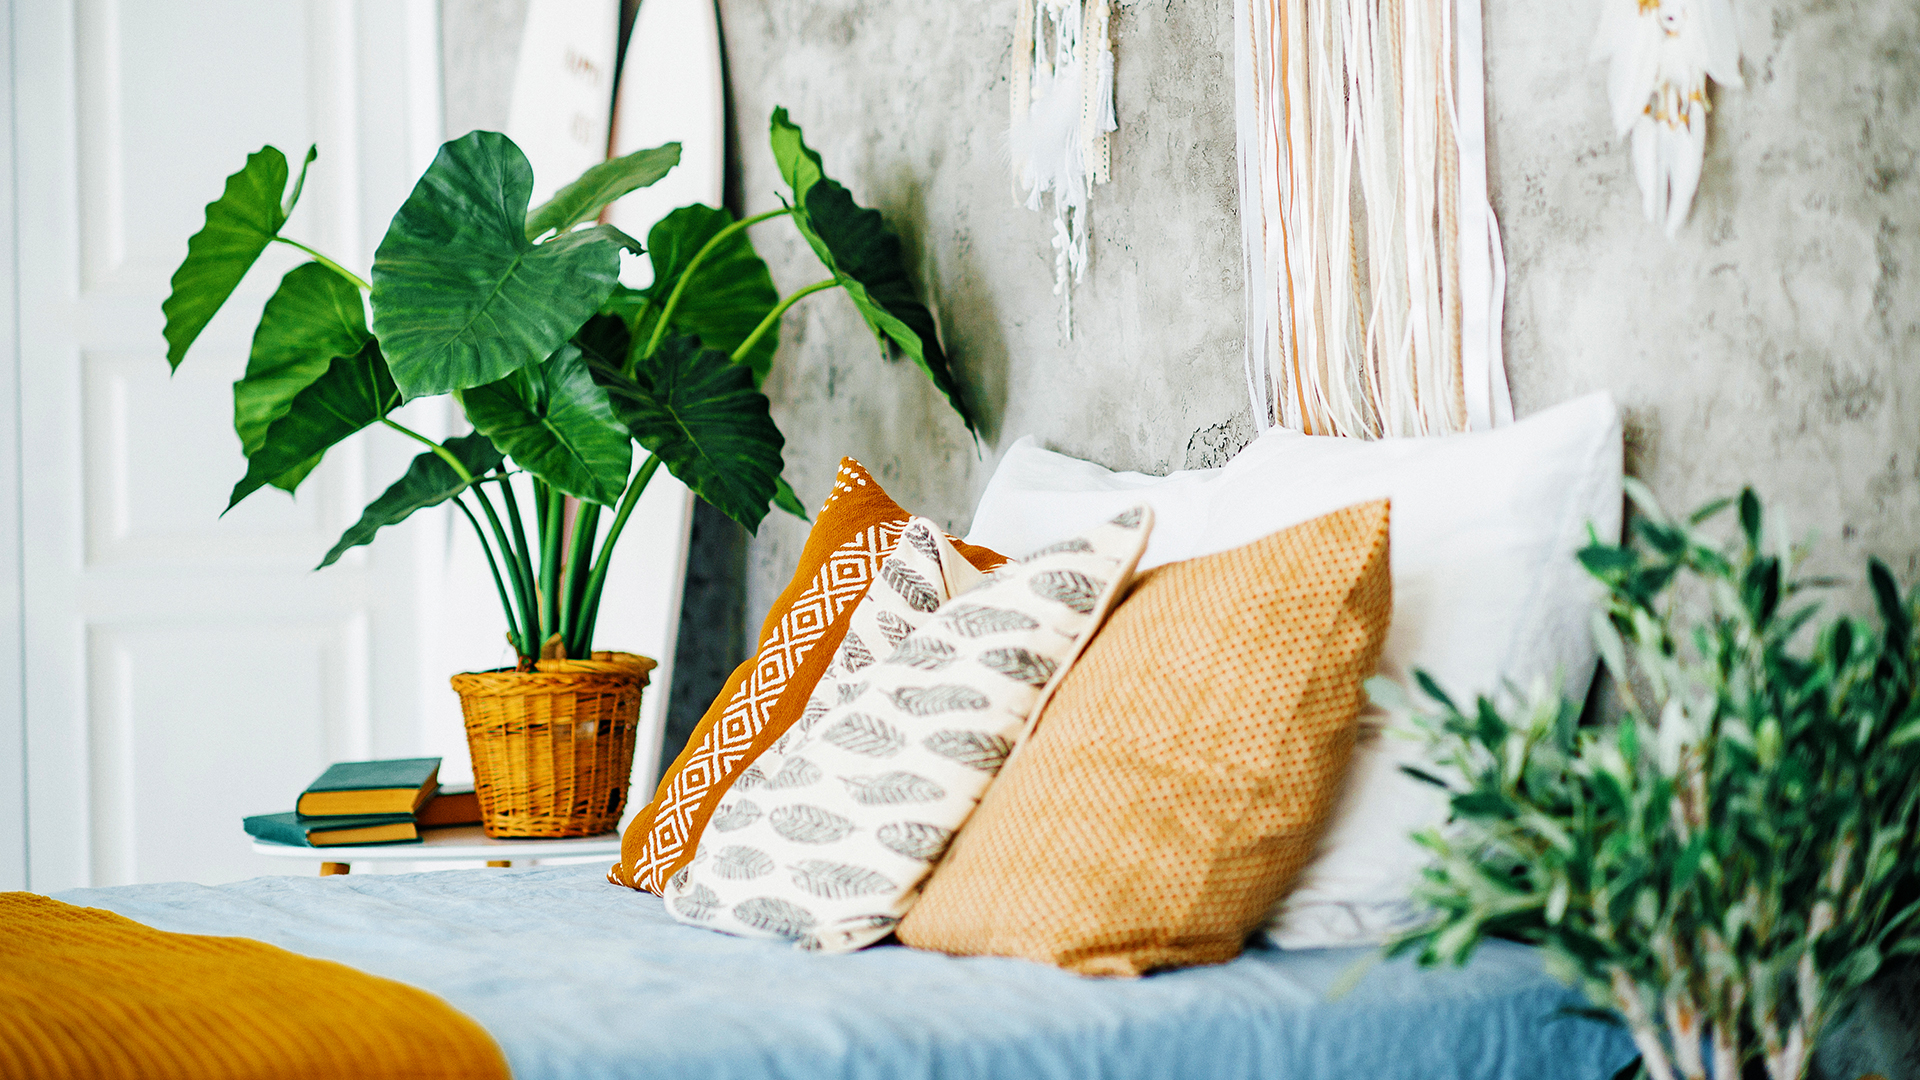 57 Bohemian Bedroom Decor Ideas Sure To Transform Your Space Stylecaster